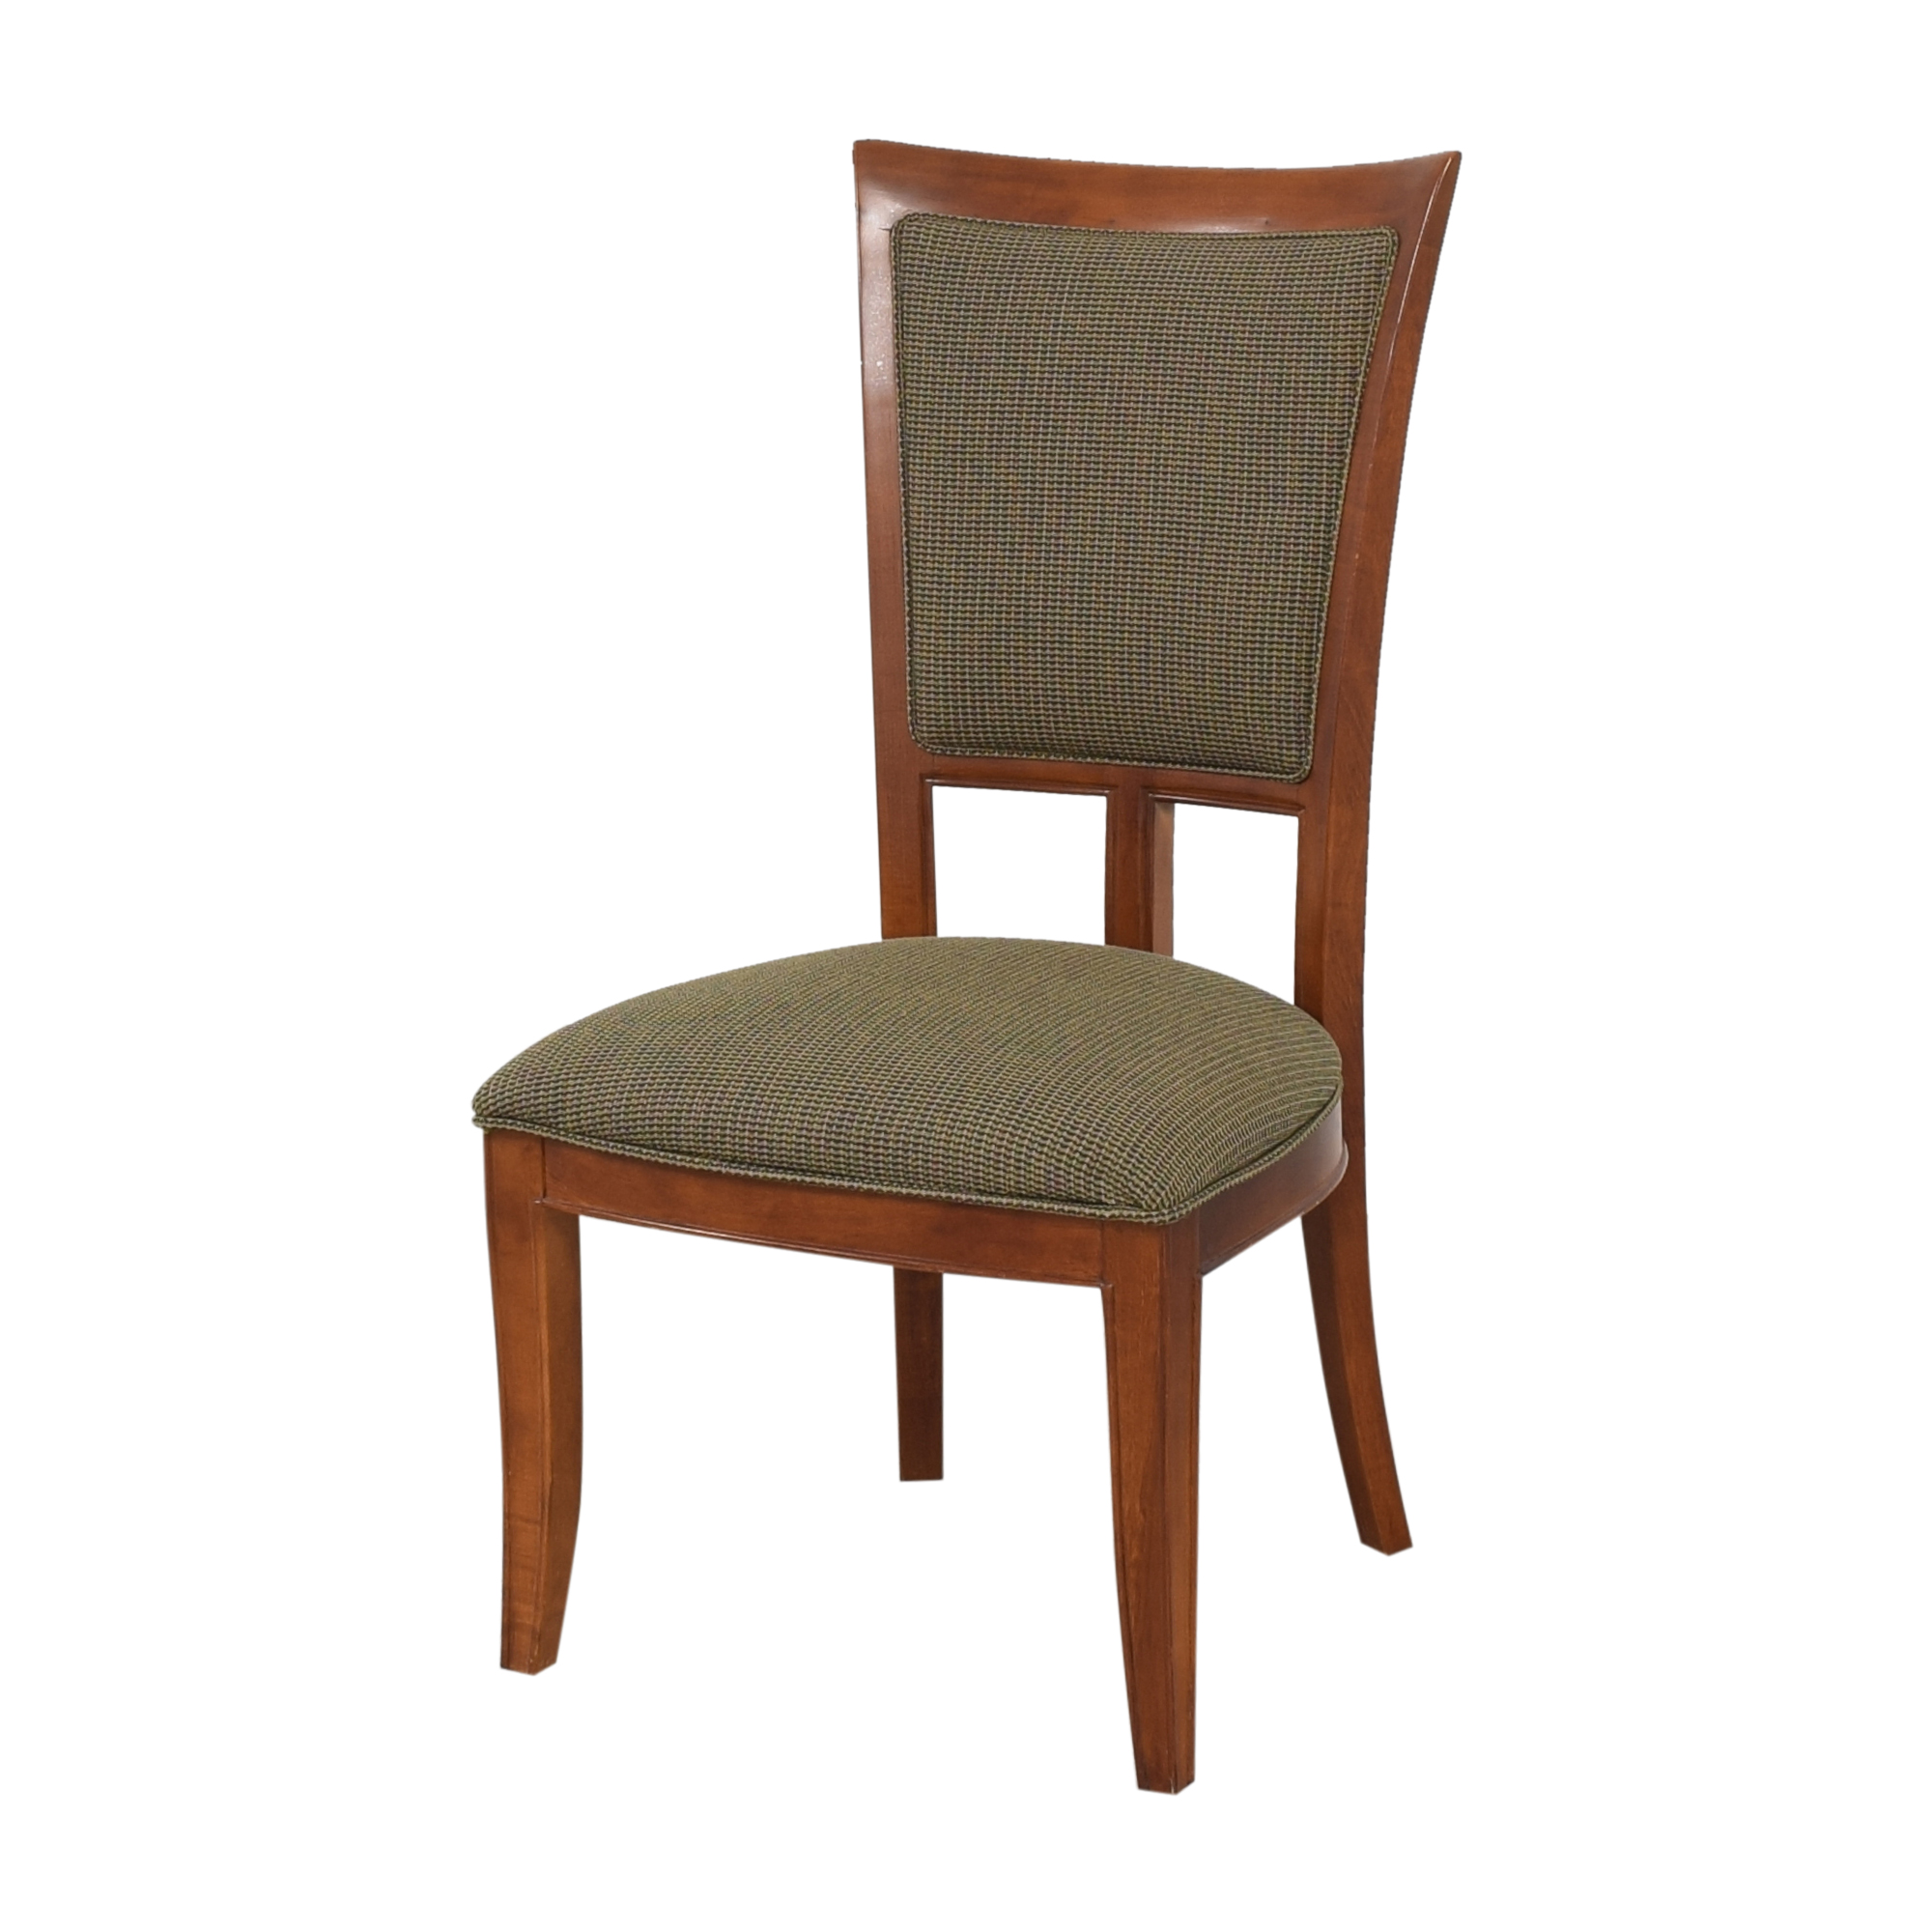 Stanley Furniture Stanley Furniture Upholstered Dining Side Chairs used